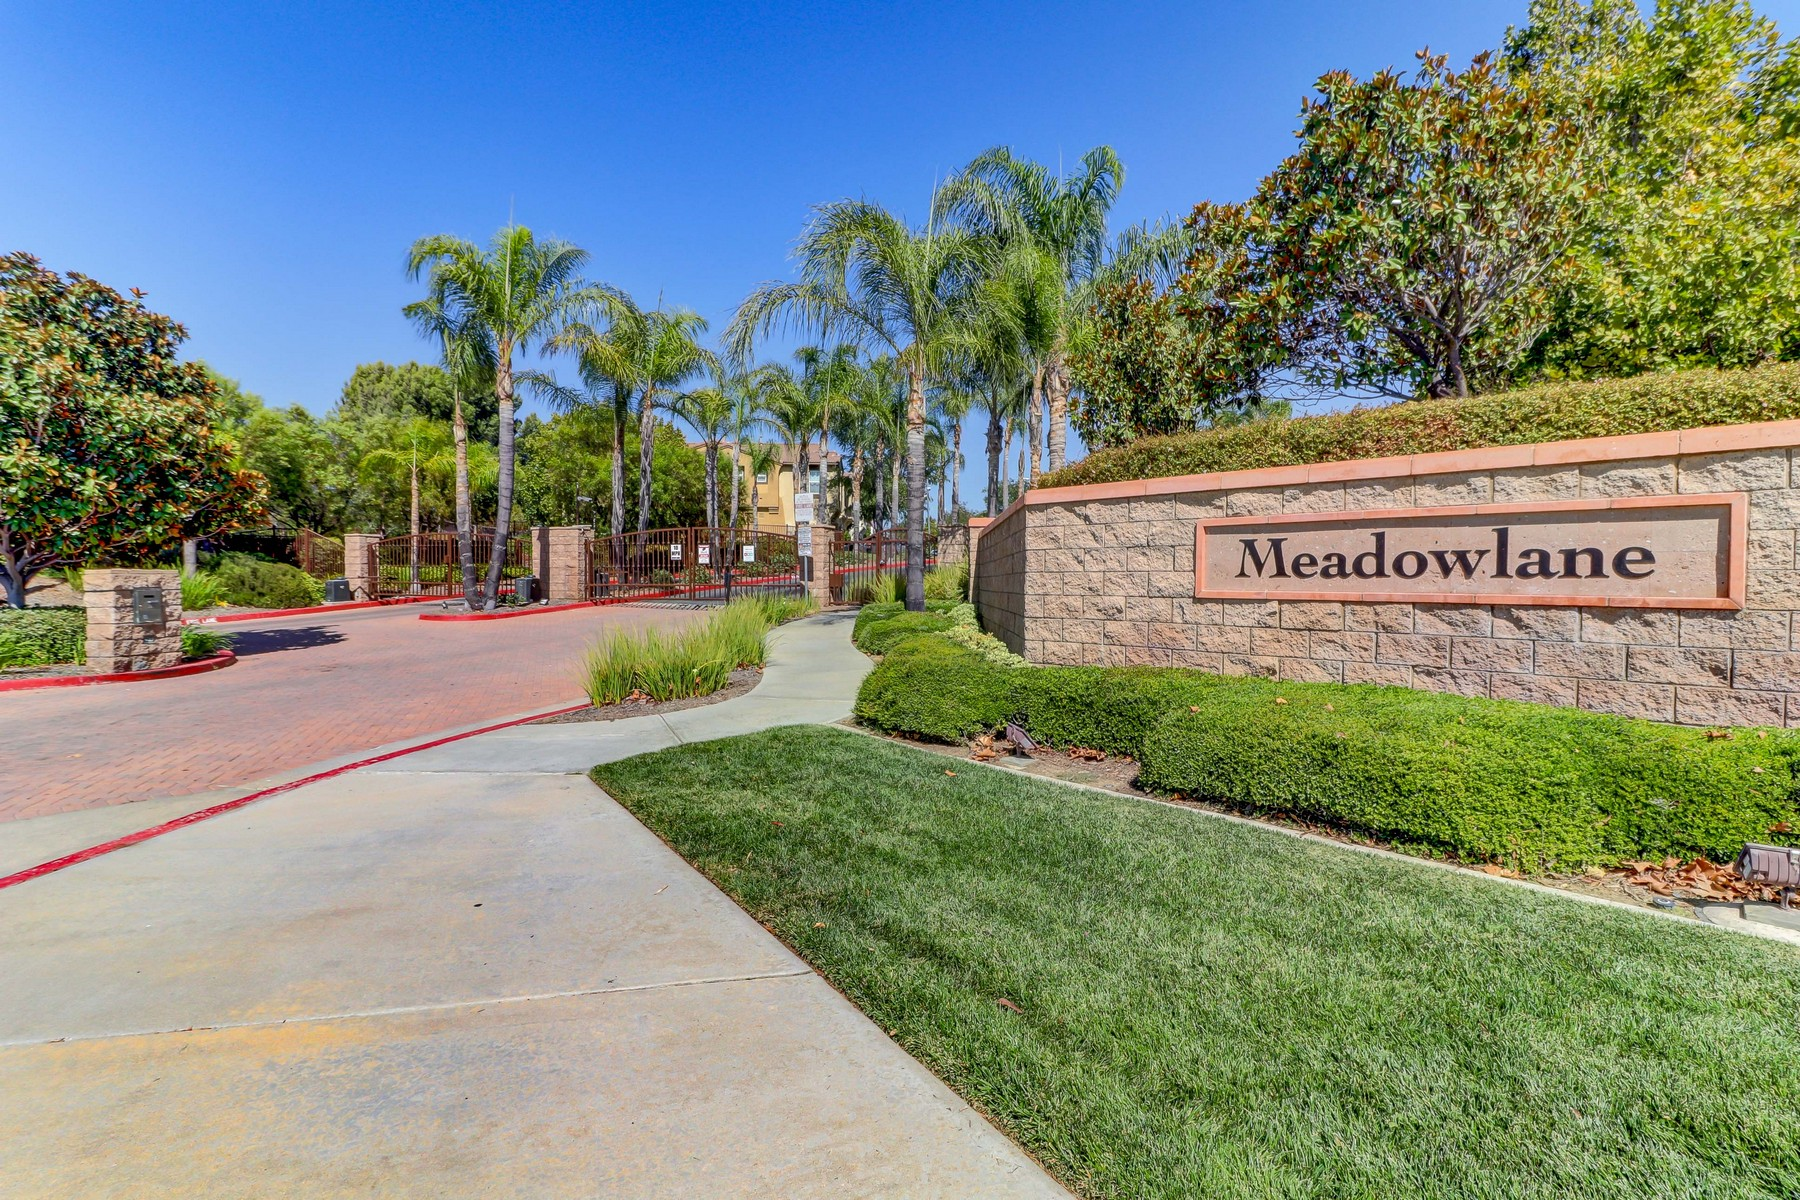 Condominiums for Sale at 25223 Windy Cove Street Unit #1, Murrieta, CA 92562 25223 Windy Cove Street Unit #1 Murrieta, California 92562 United States